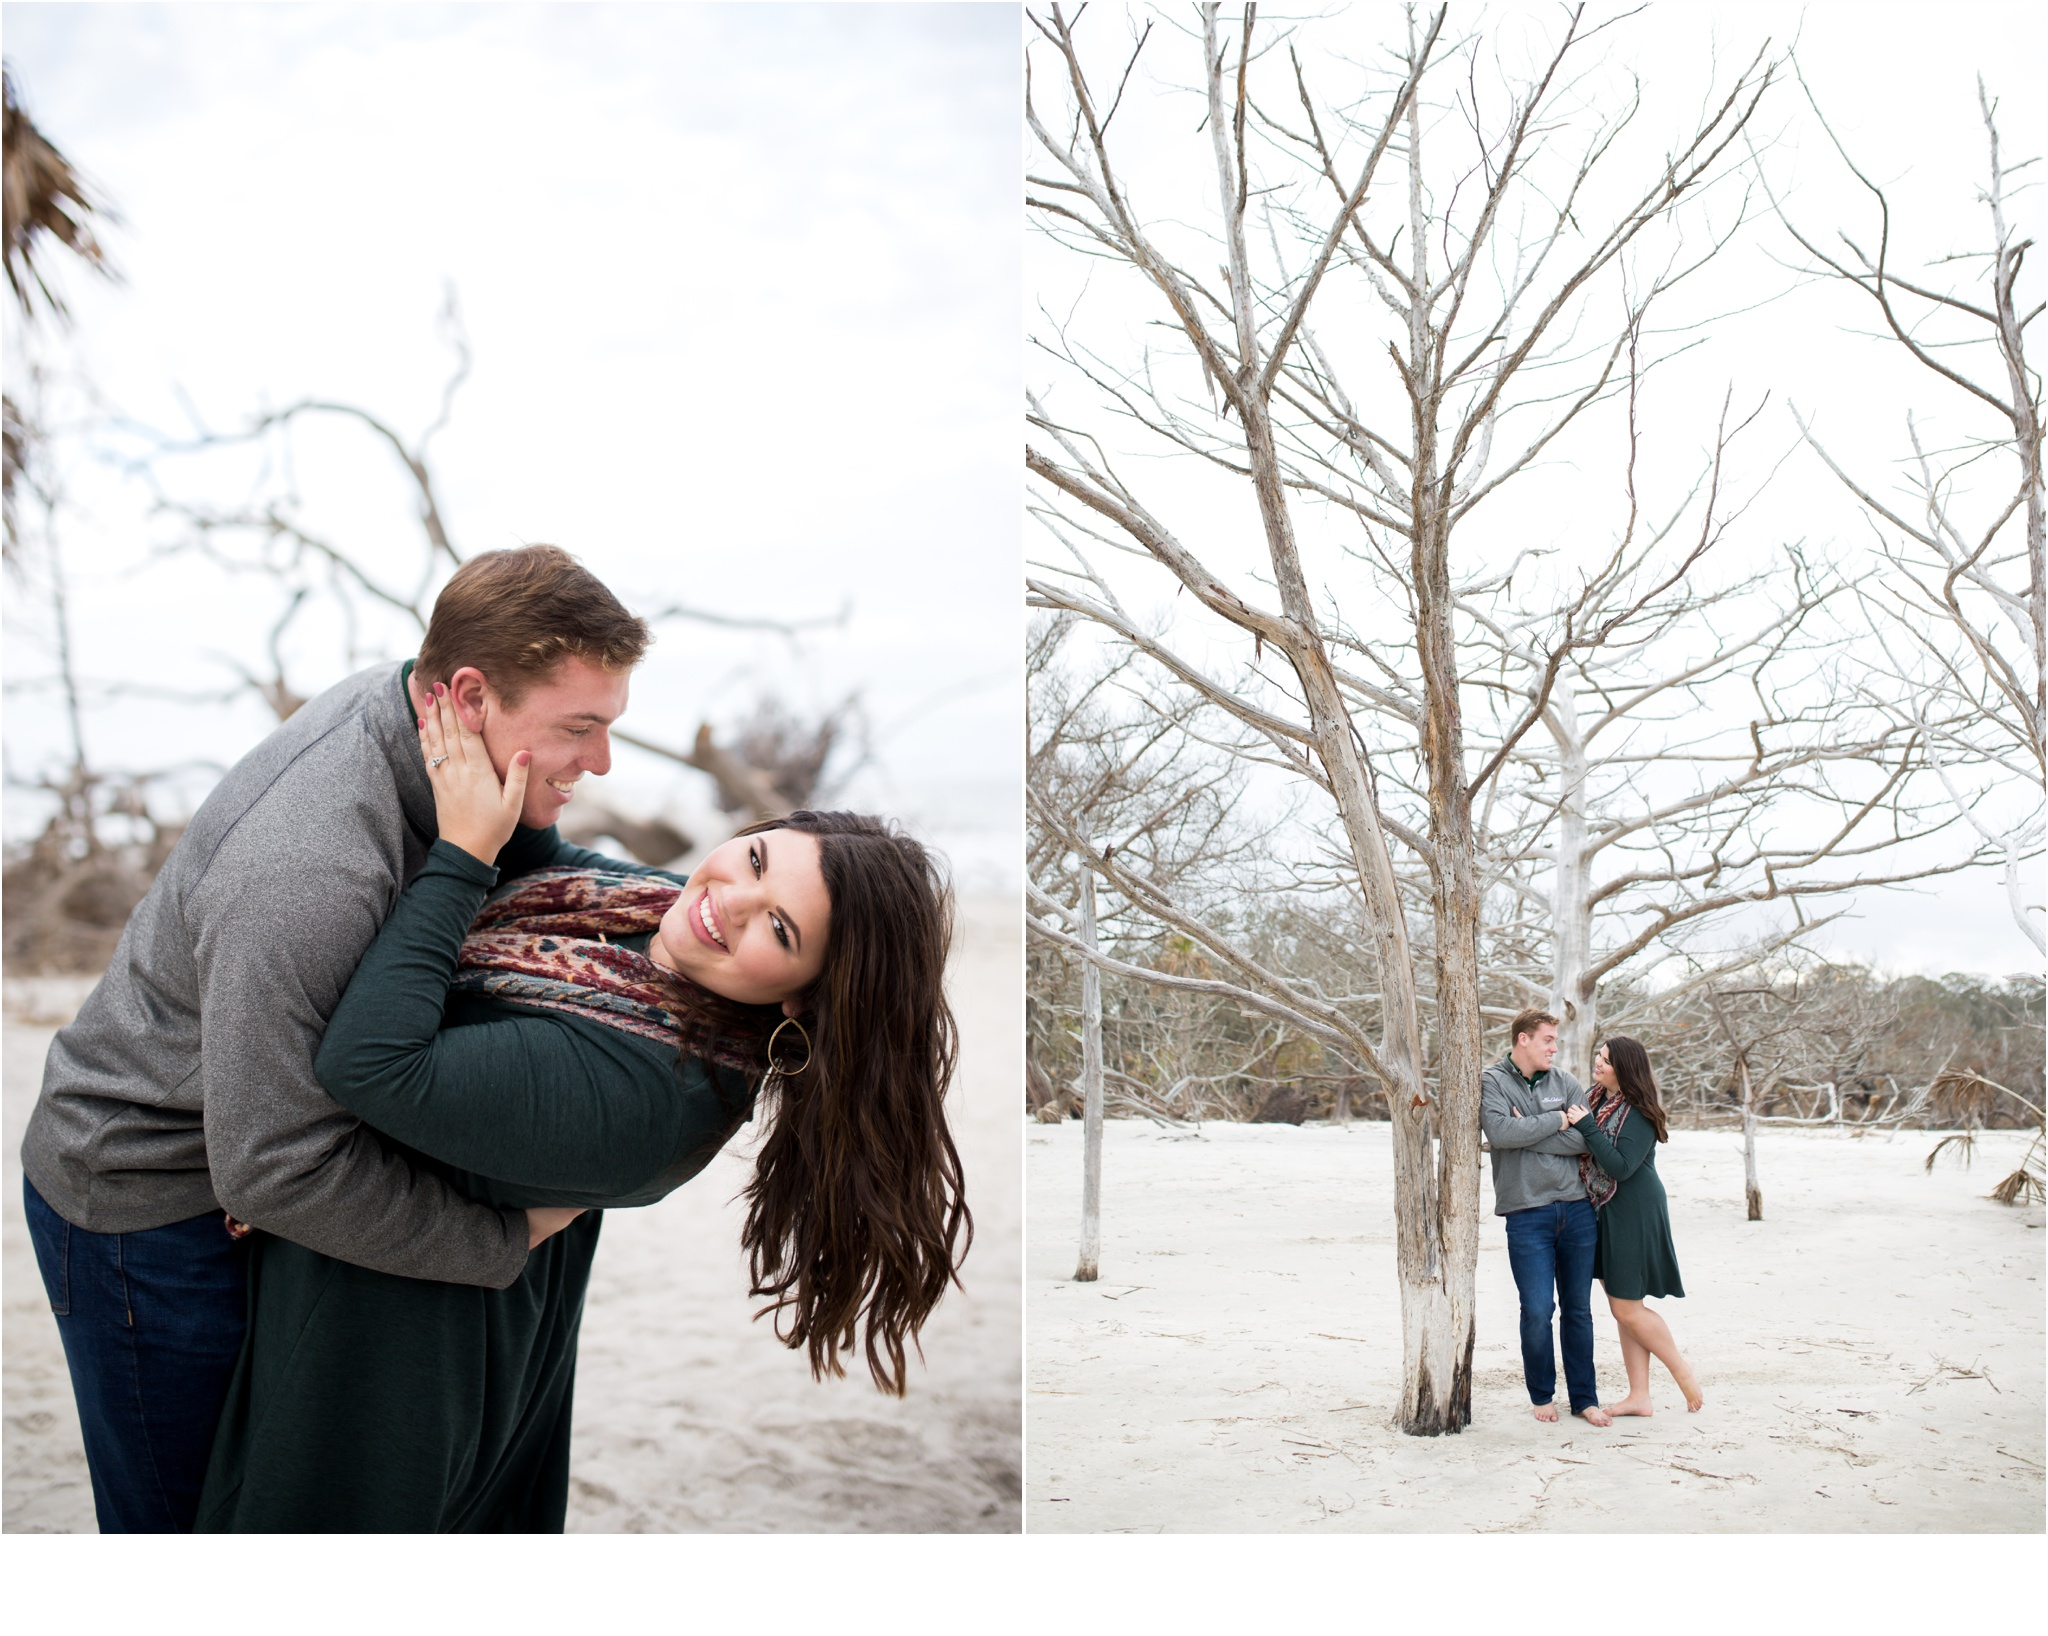 Rainey_Gregg_Photography_St._Simons_Island_Georgia_California_Wedding_Portrait_Photography_1642.jpg